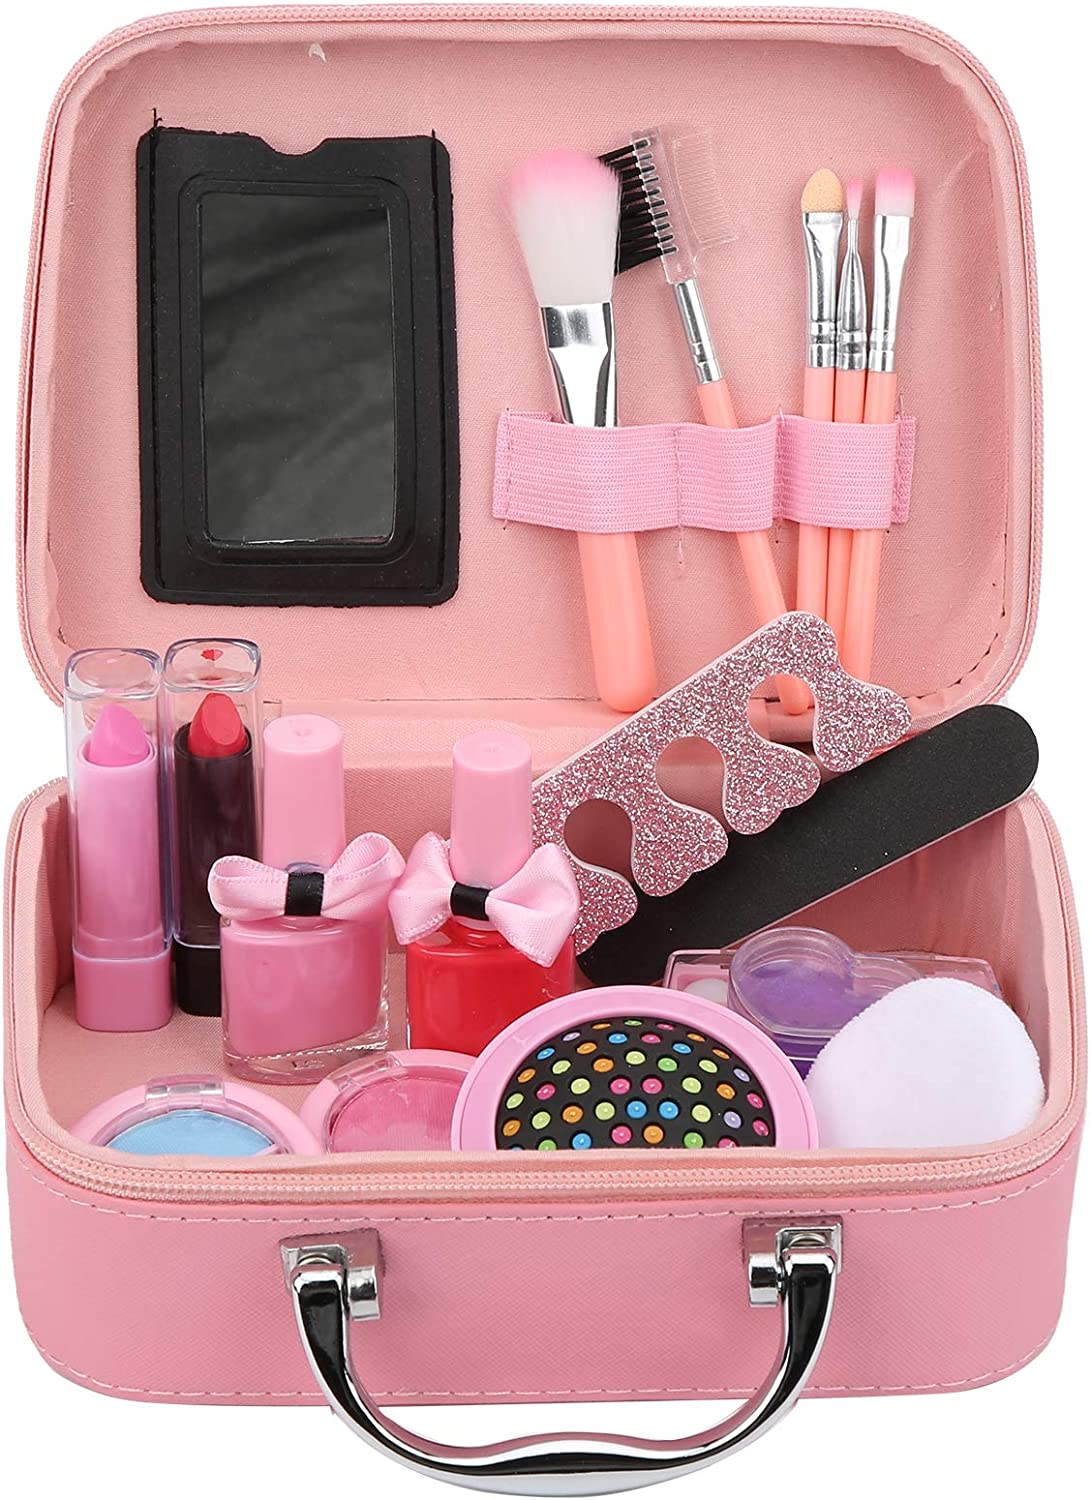 SALUTUY Makeup Import Handbag Toys 35% OFF Children W Safe Toy Cosmetic